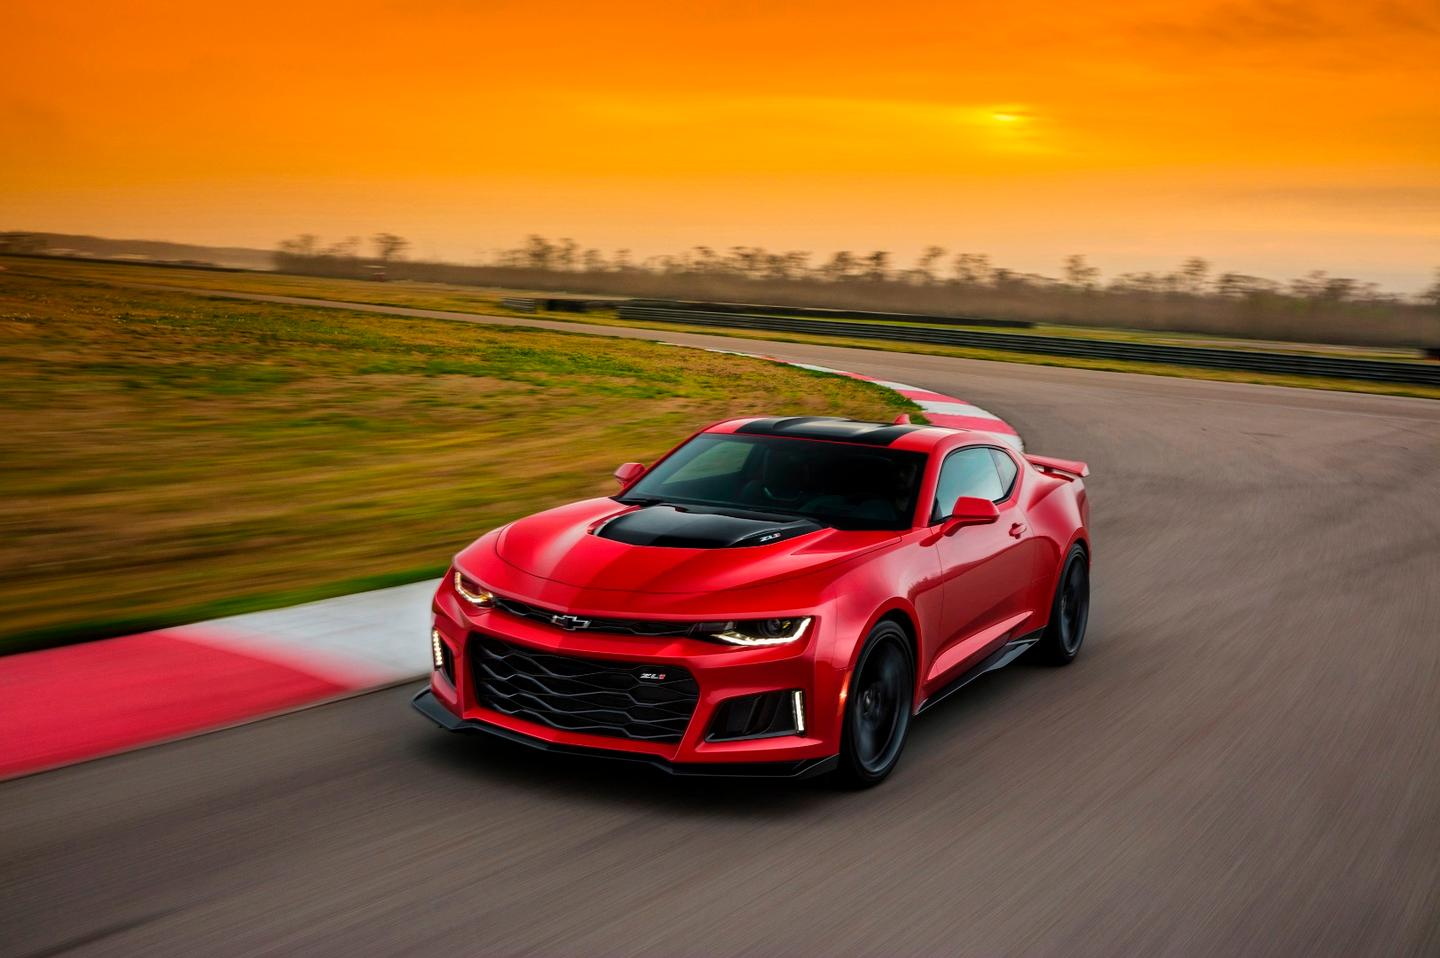 The Chevrolet Camaro ZL1 is packing a 640-hp supercharged V8